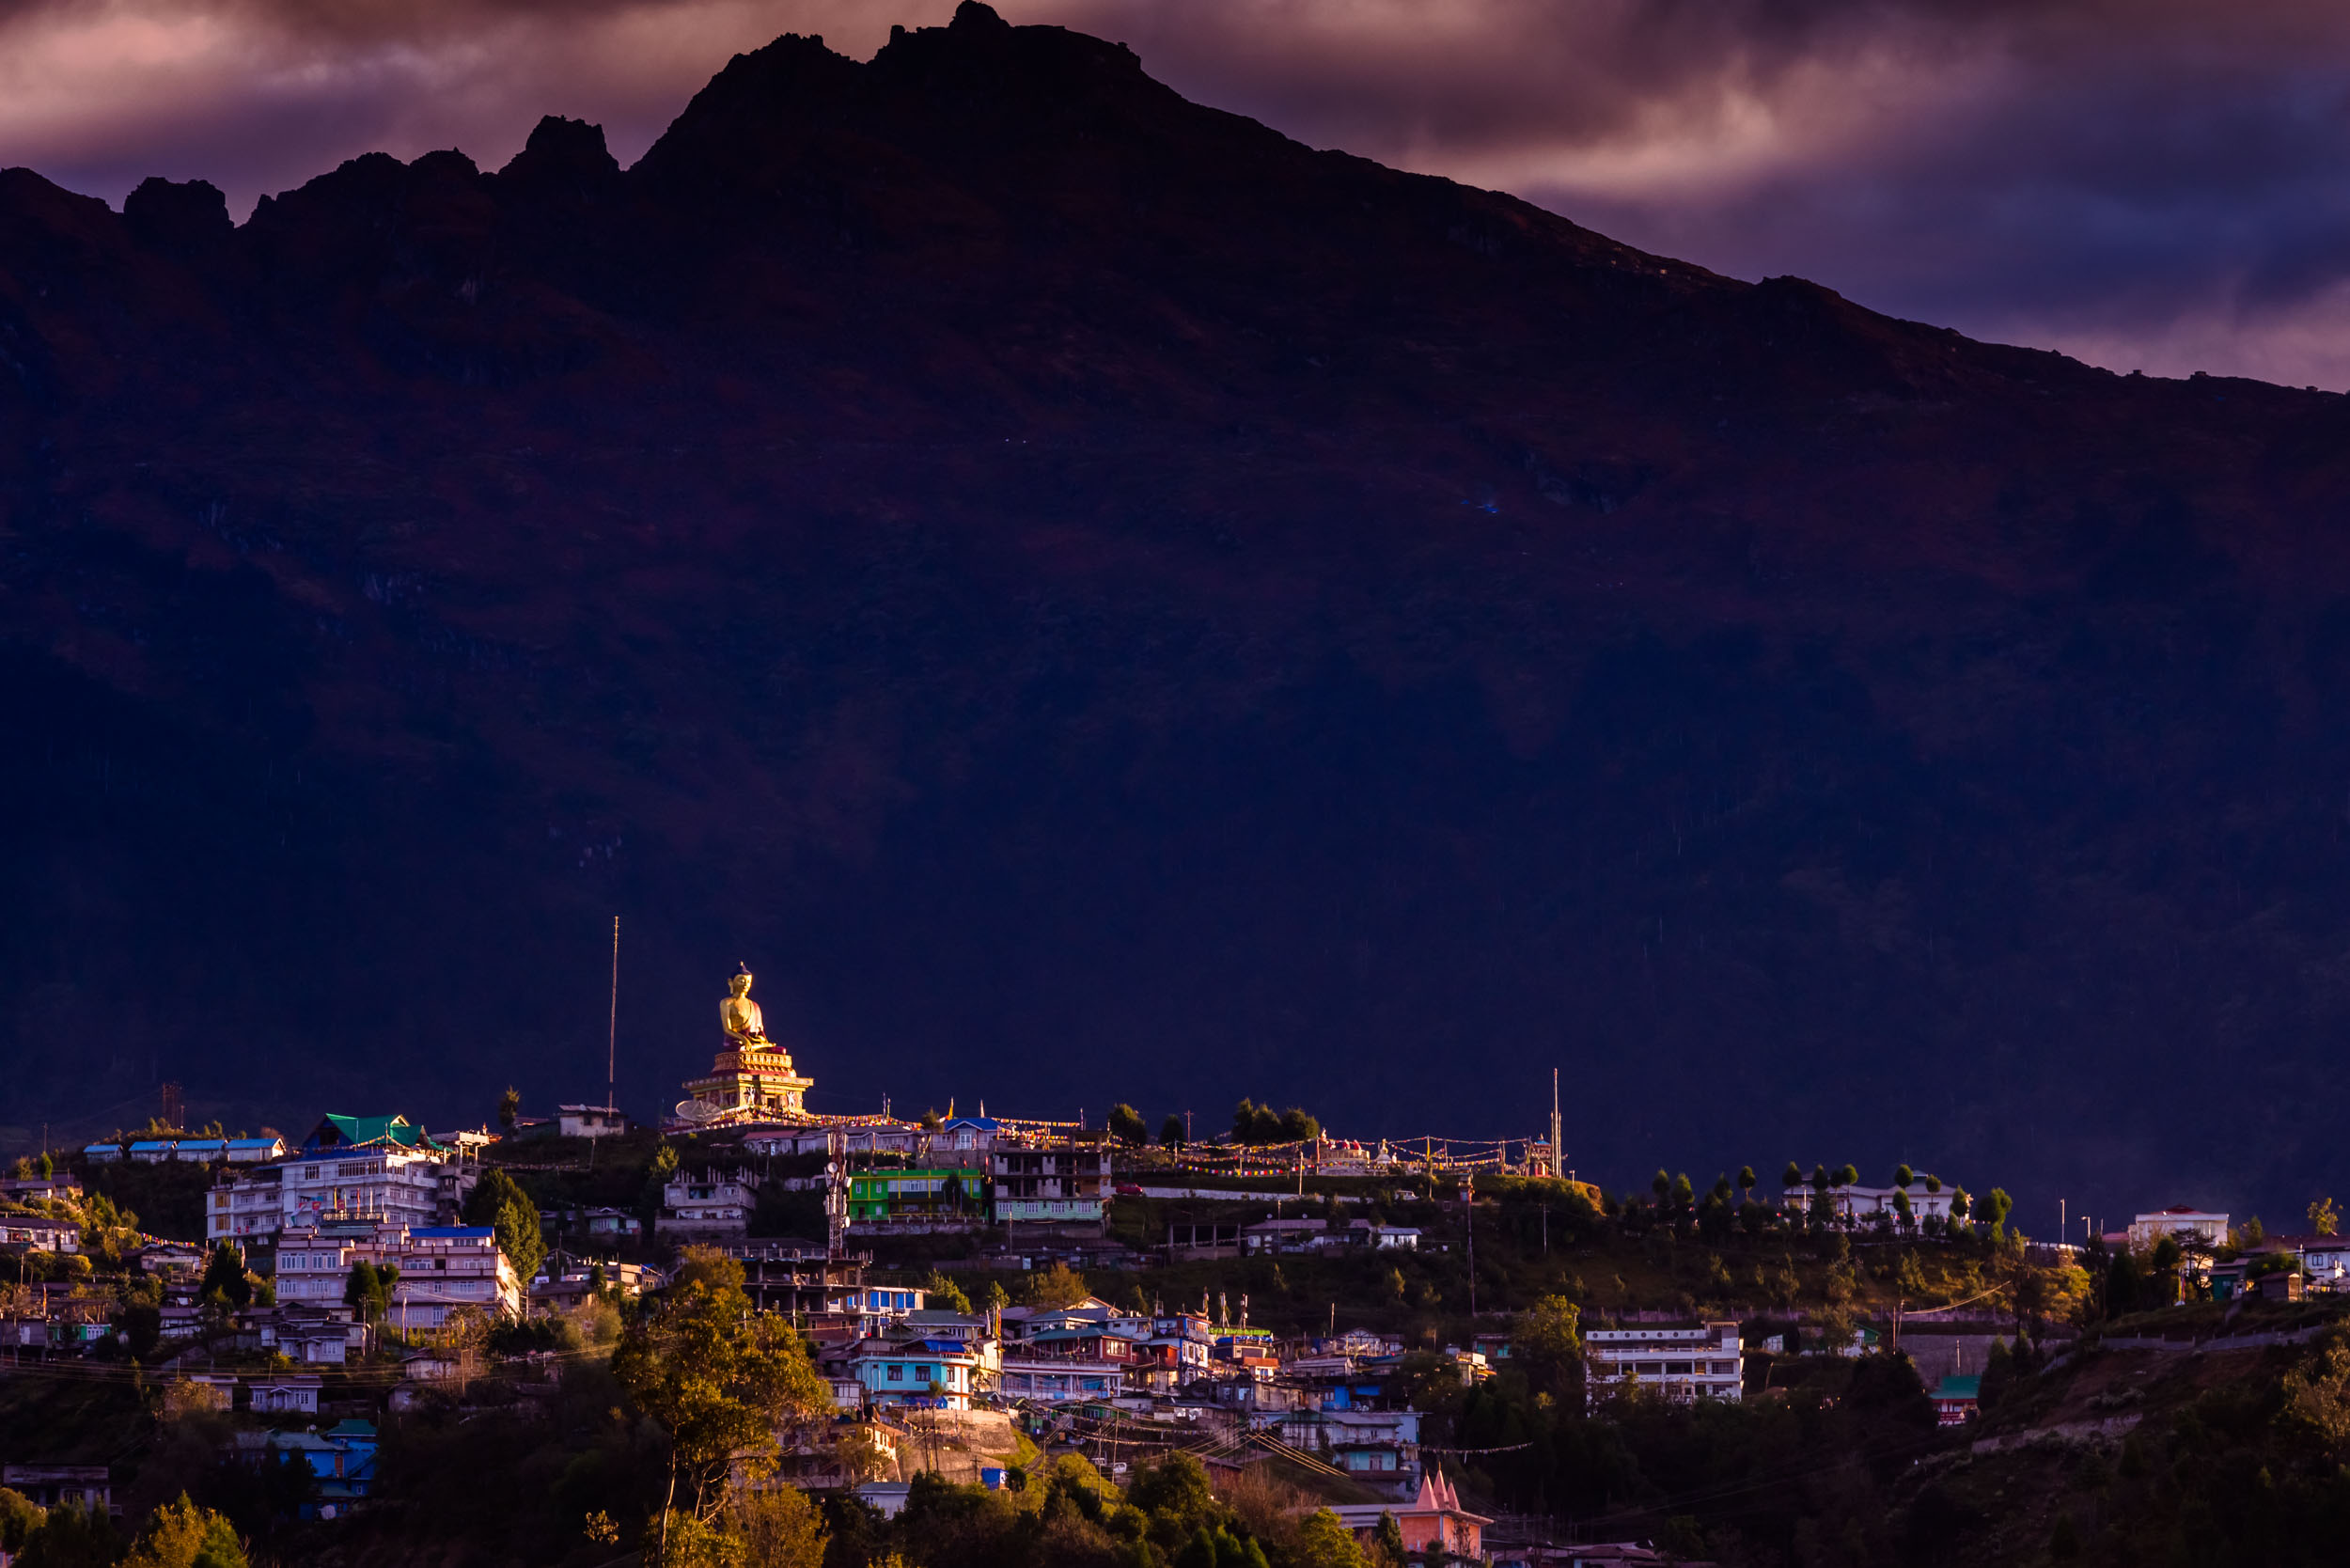 First Ray of Sun on Buddha statue in Tawang town